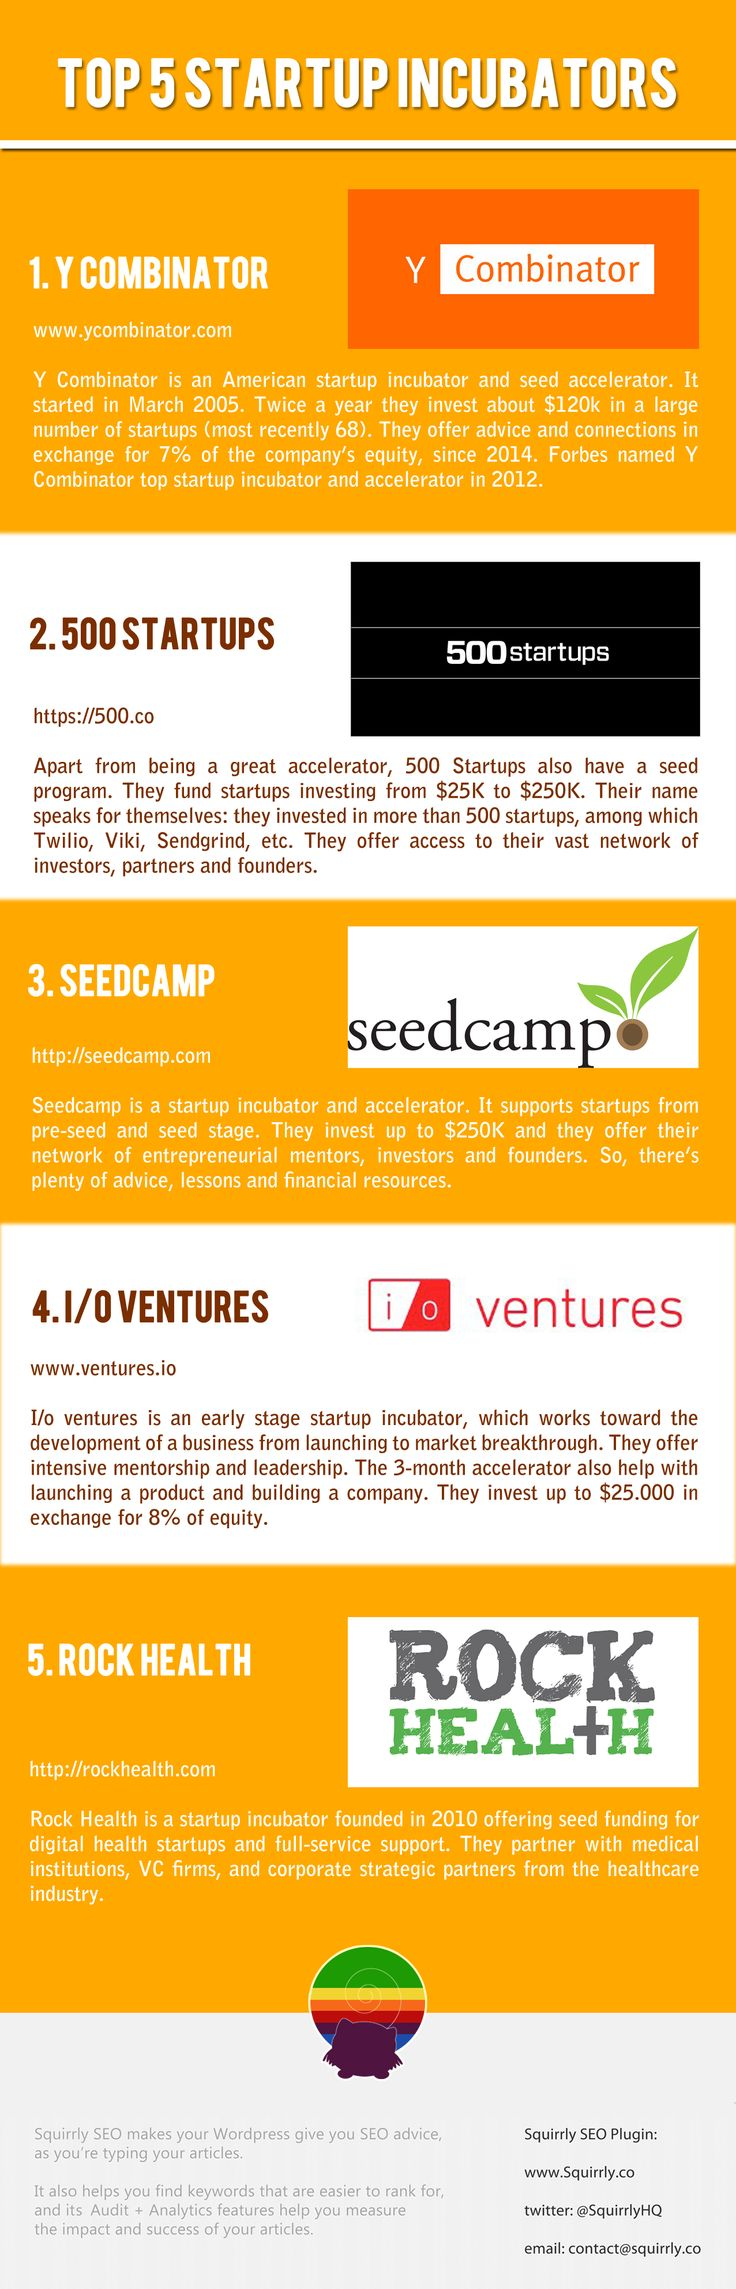 startup incubators - You know that both #accelerators and #startup incubators help businesses and startups grow, but incubators are great because they assist companies in their infancy, while accelerators help them develop and expand further. Check out my top 5!